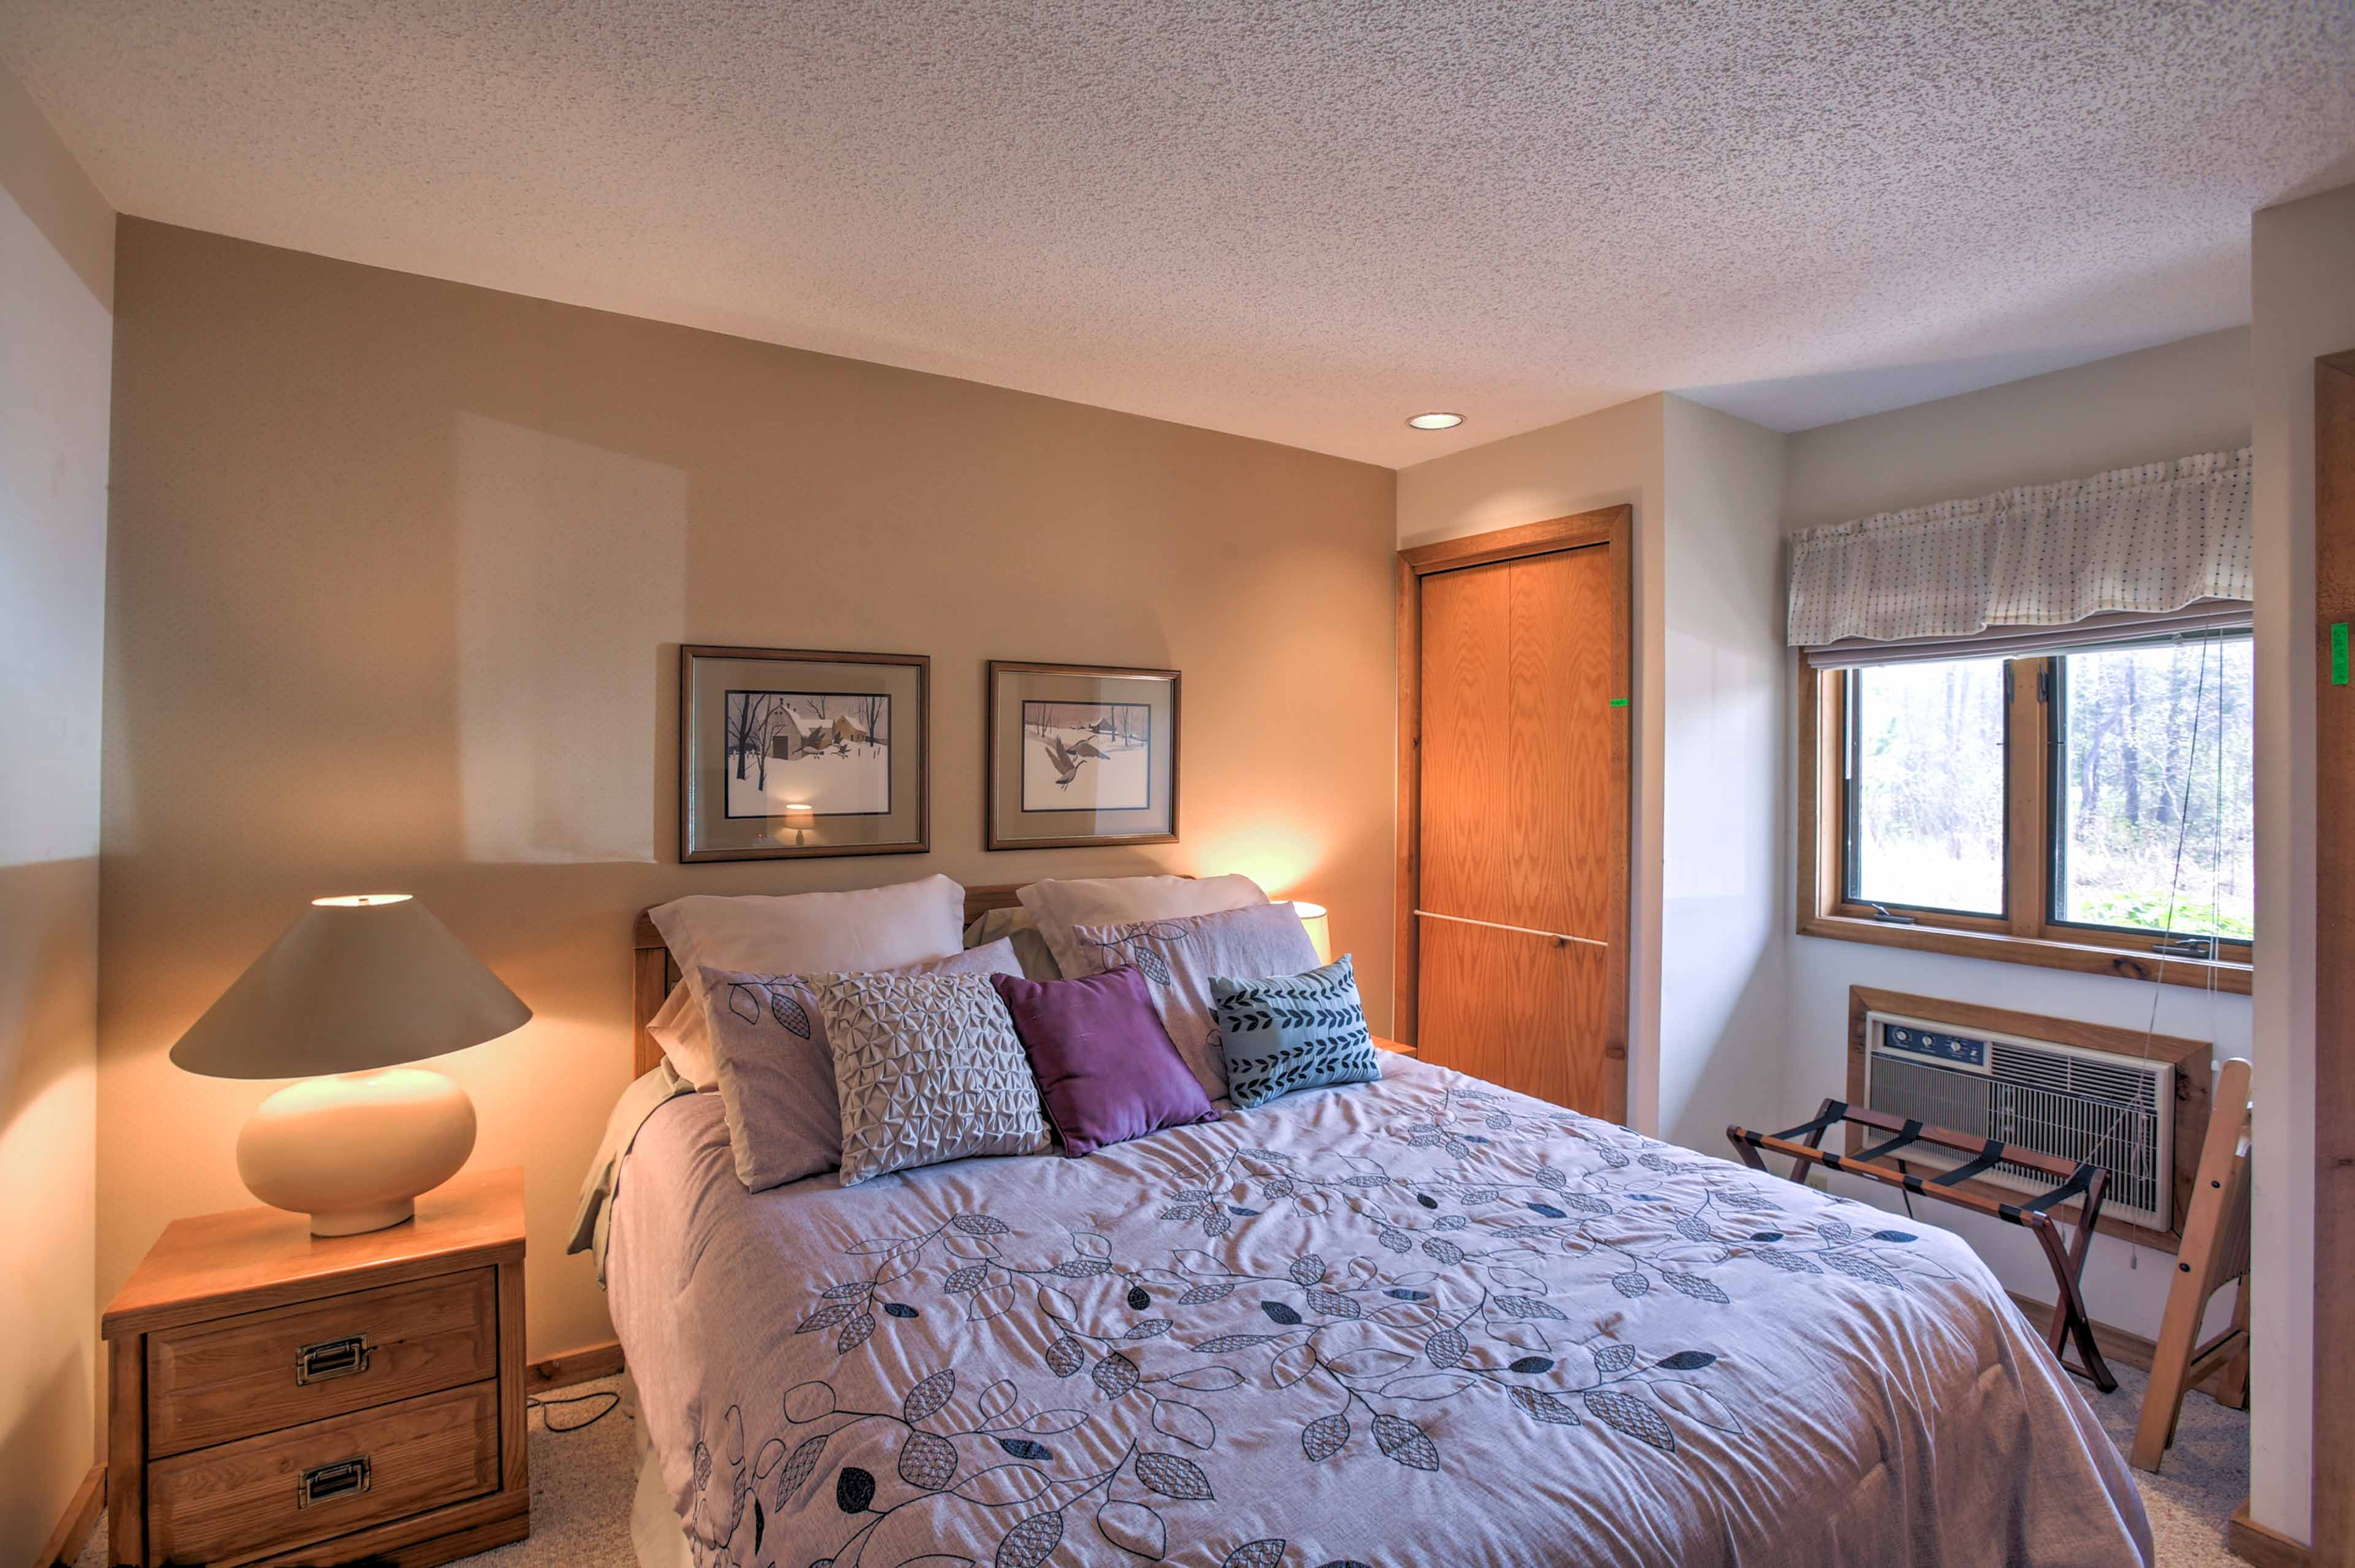 The first bedroom boasts a plush queen-sized bed.